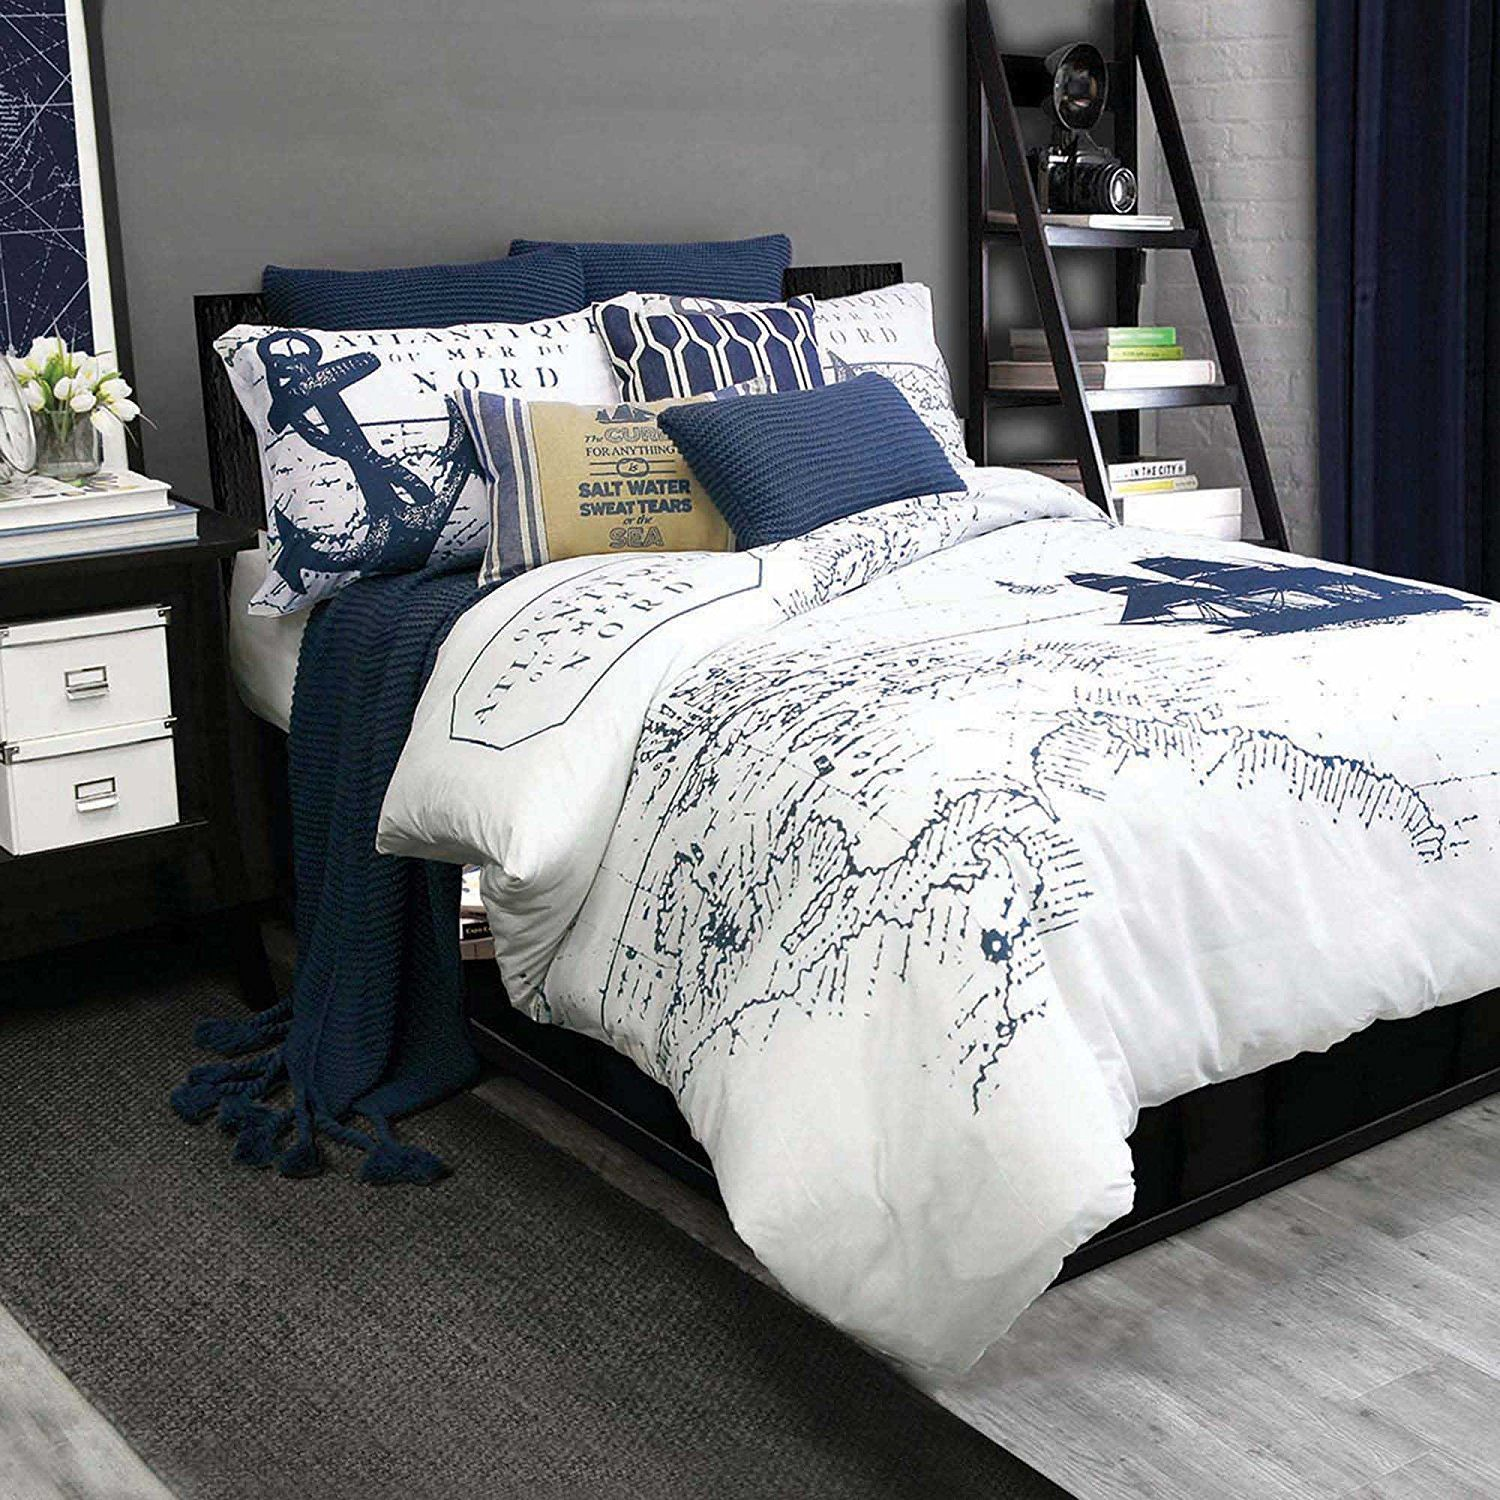 Love This Nautical Map Bedding  Classic And Themed But